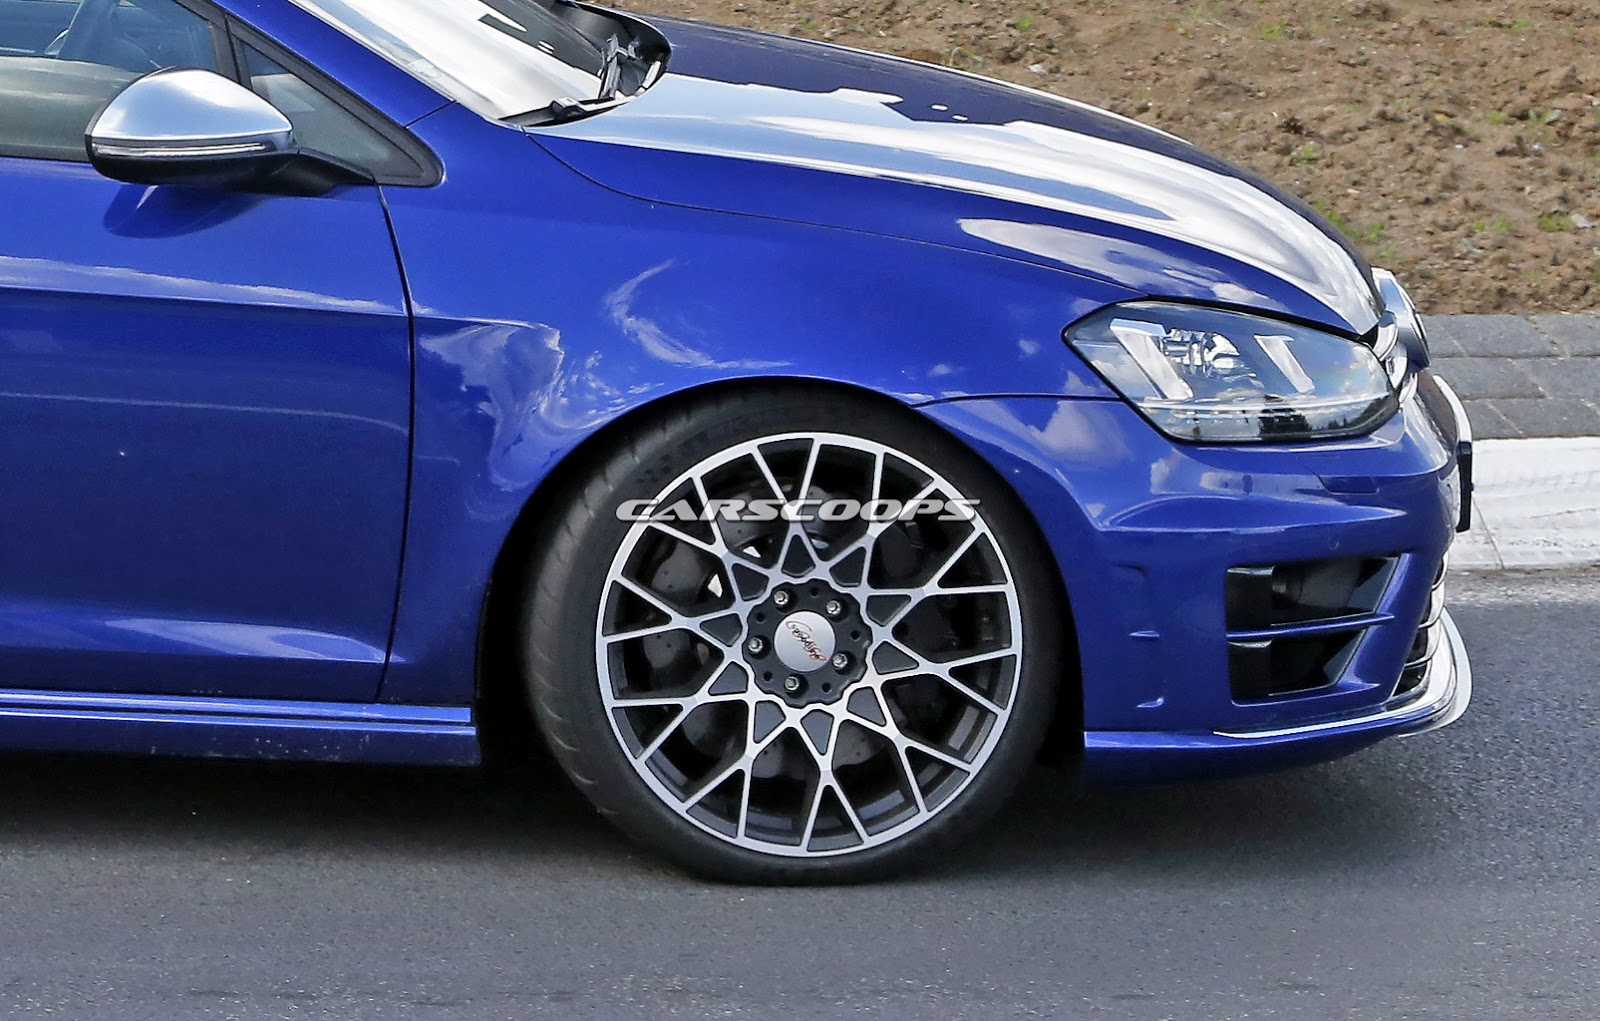 Spied: VW Nears Supercar Territory With Golf R400 Hyper